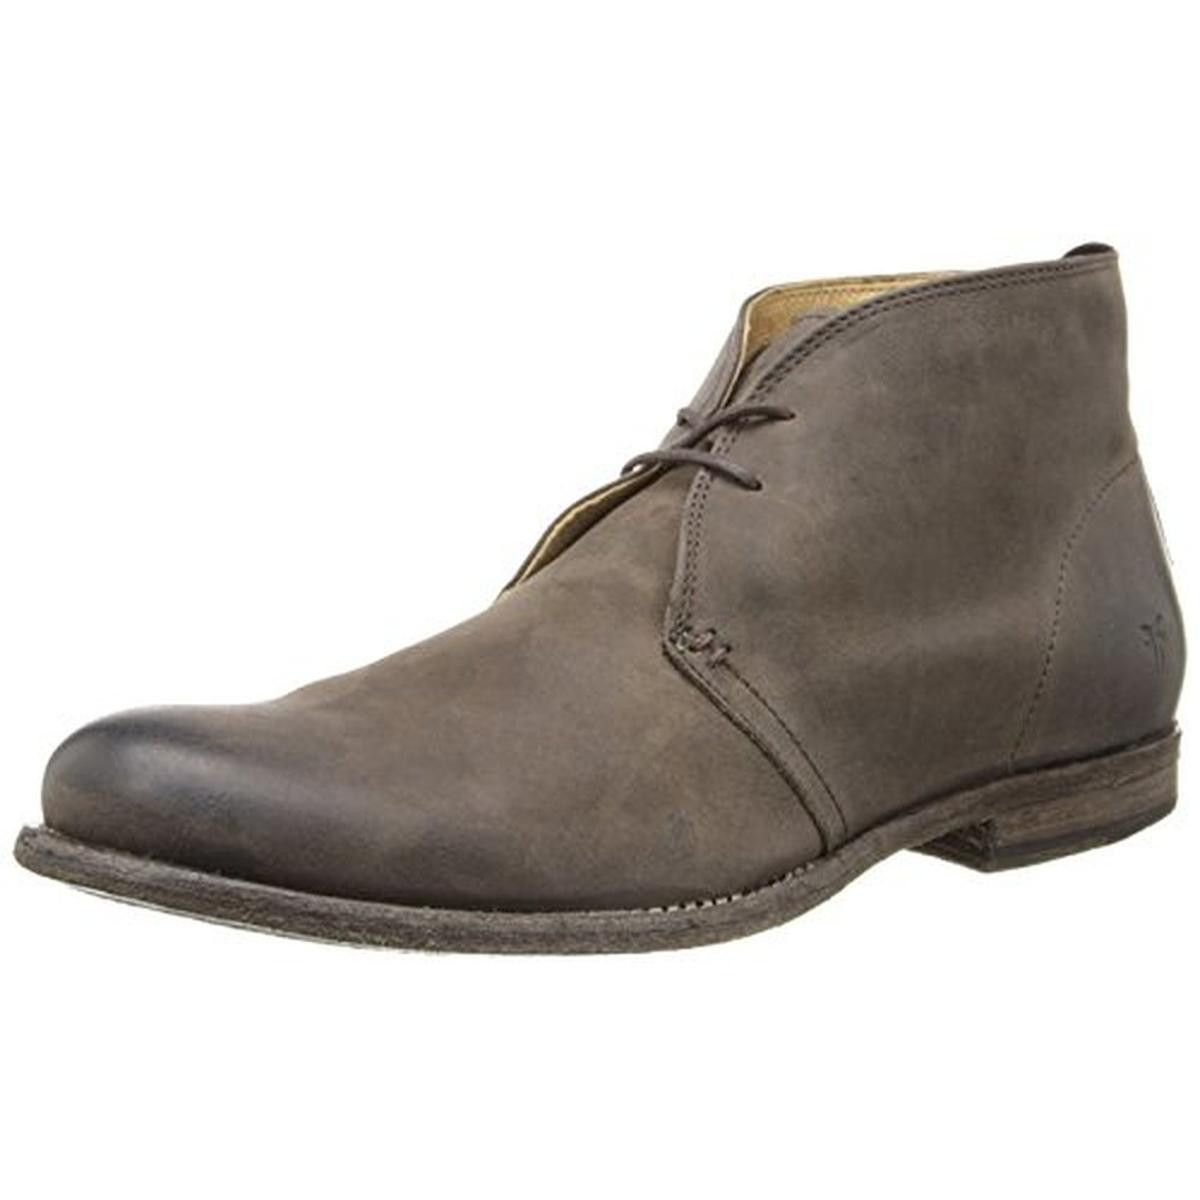 Frye Mens Phillip Leather Distressed Chukka Boots   Products ...